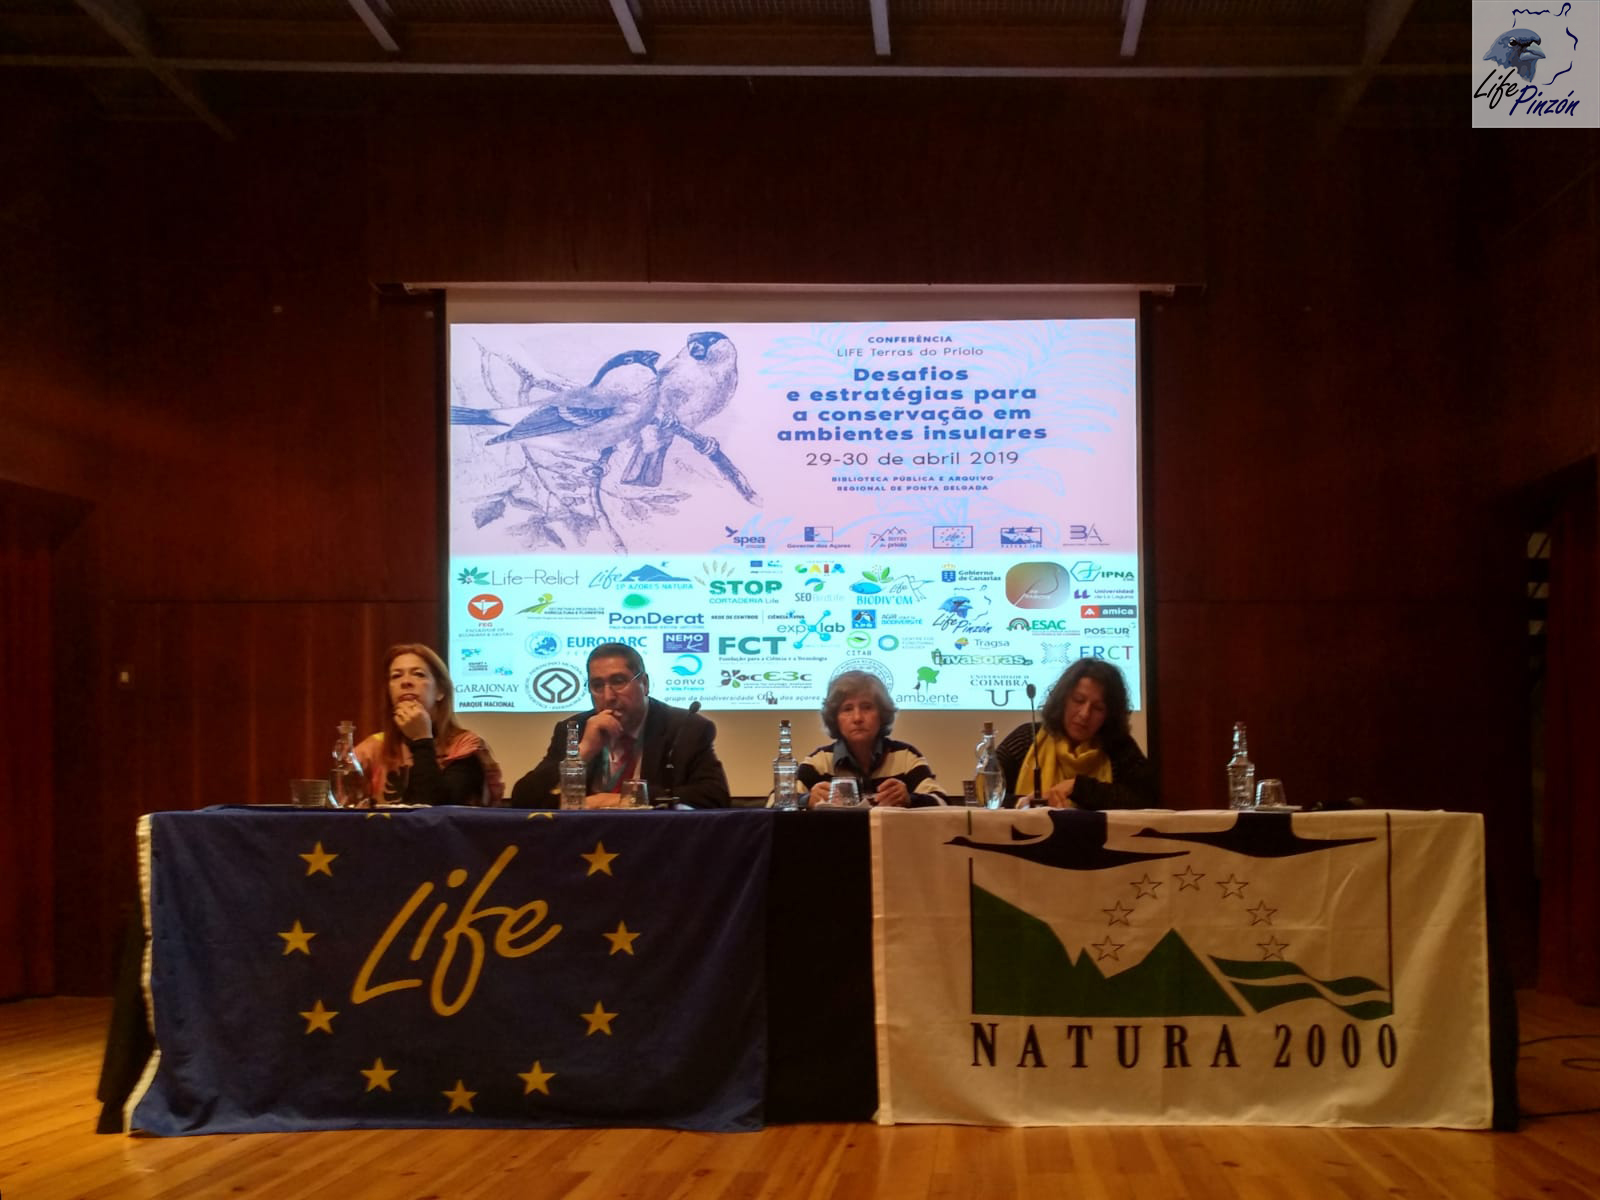 LIFE+Pinzón en la Conferencia del LIFE Terras do Priolo29 Abril – 1 Mayo 2019